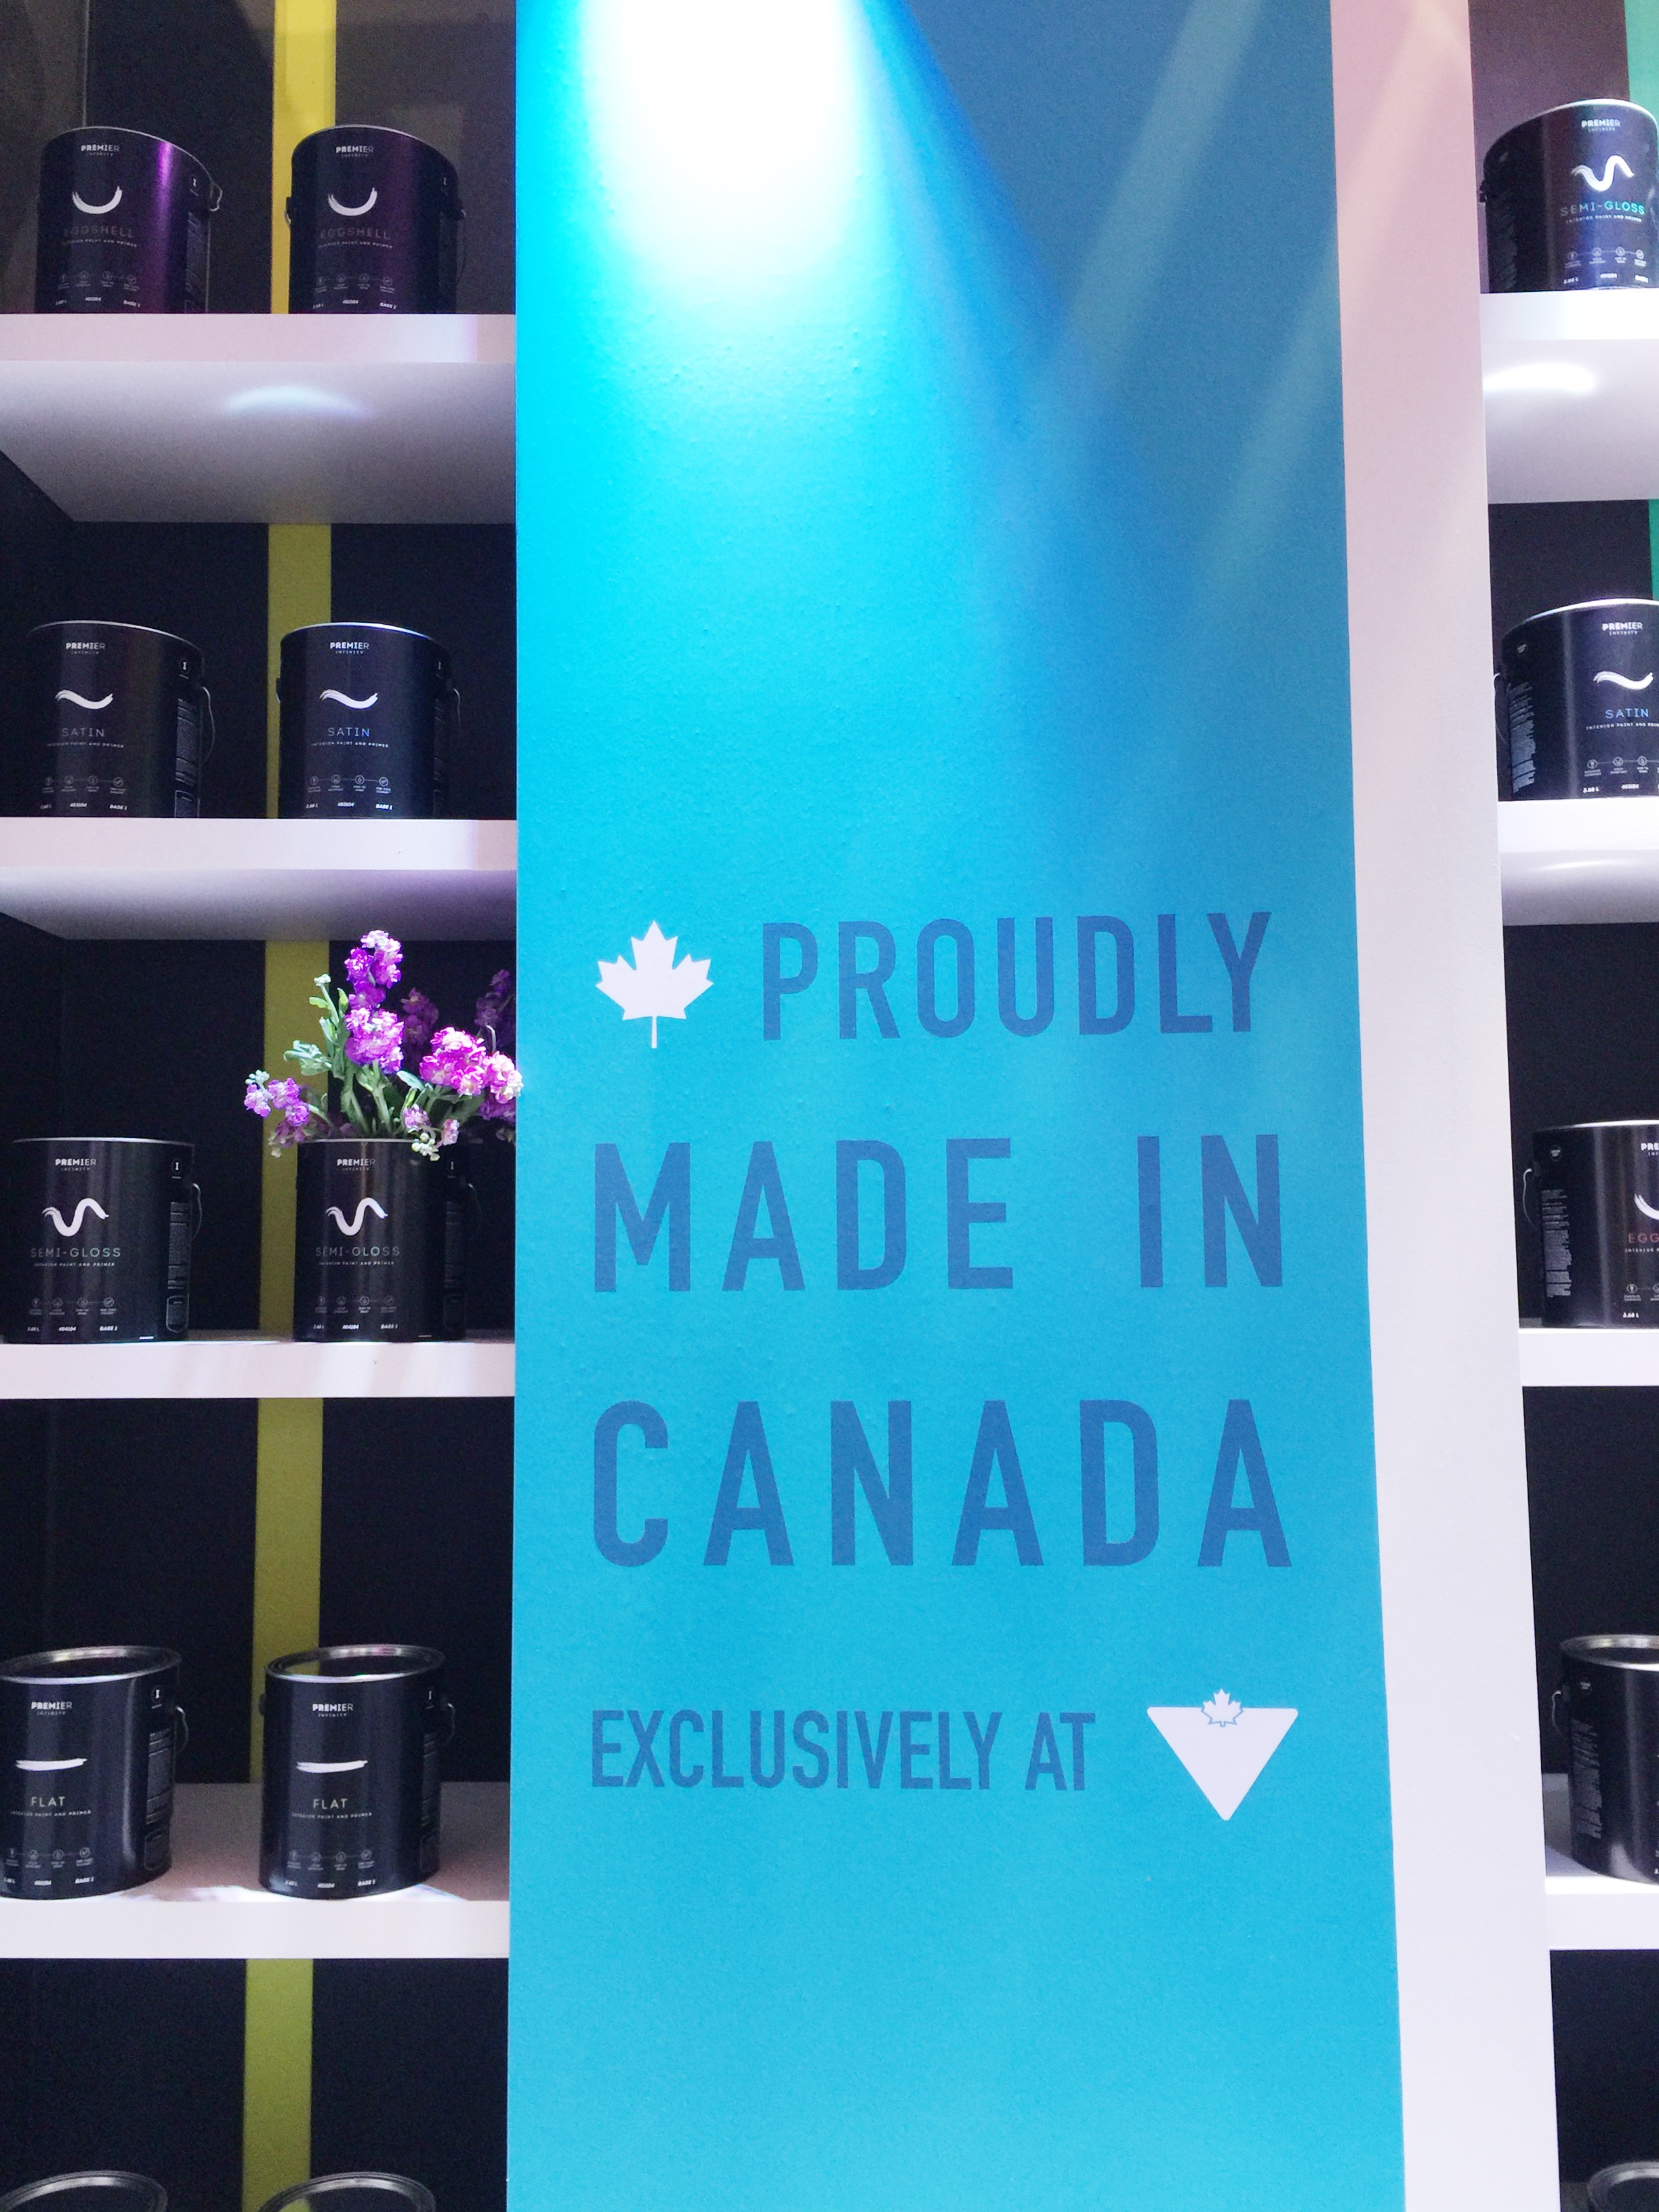 Canadian Tire Book Shelves Toronto Interior Design Show With Premier Infinity Paint The